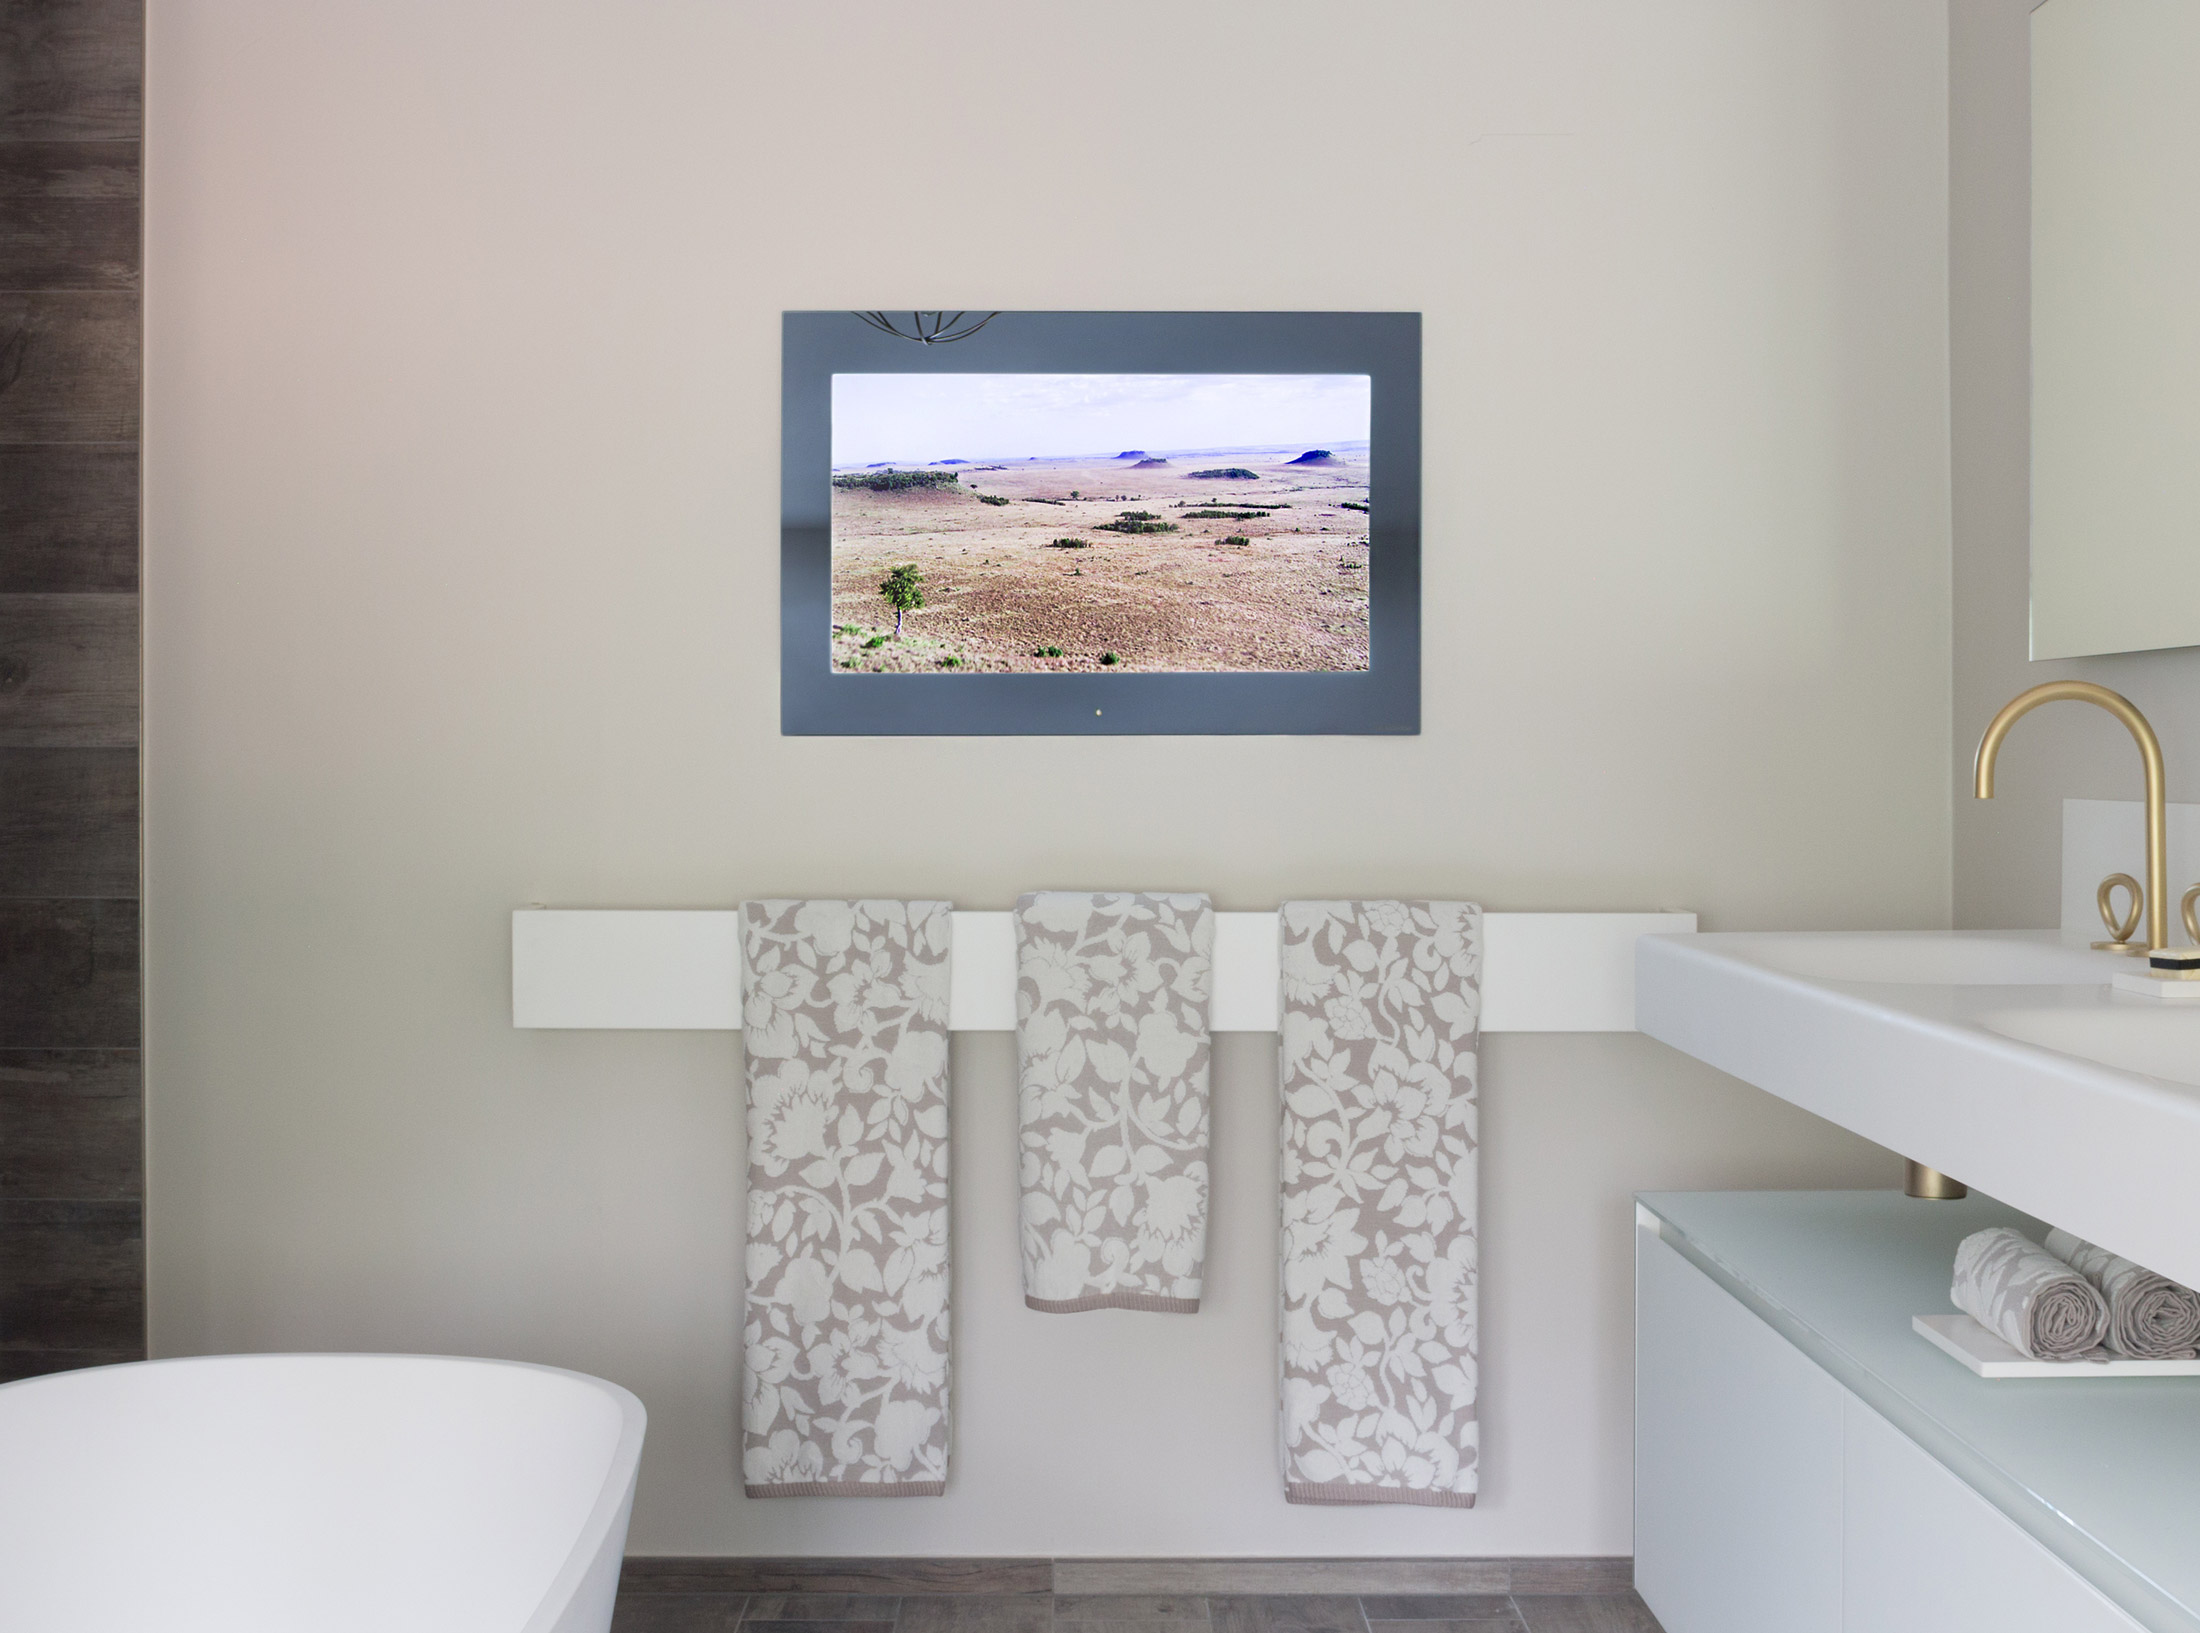 Aquavision Waterproof Bathroom Television Televisions